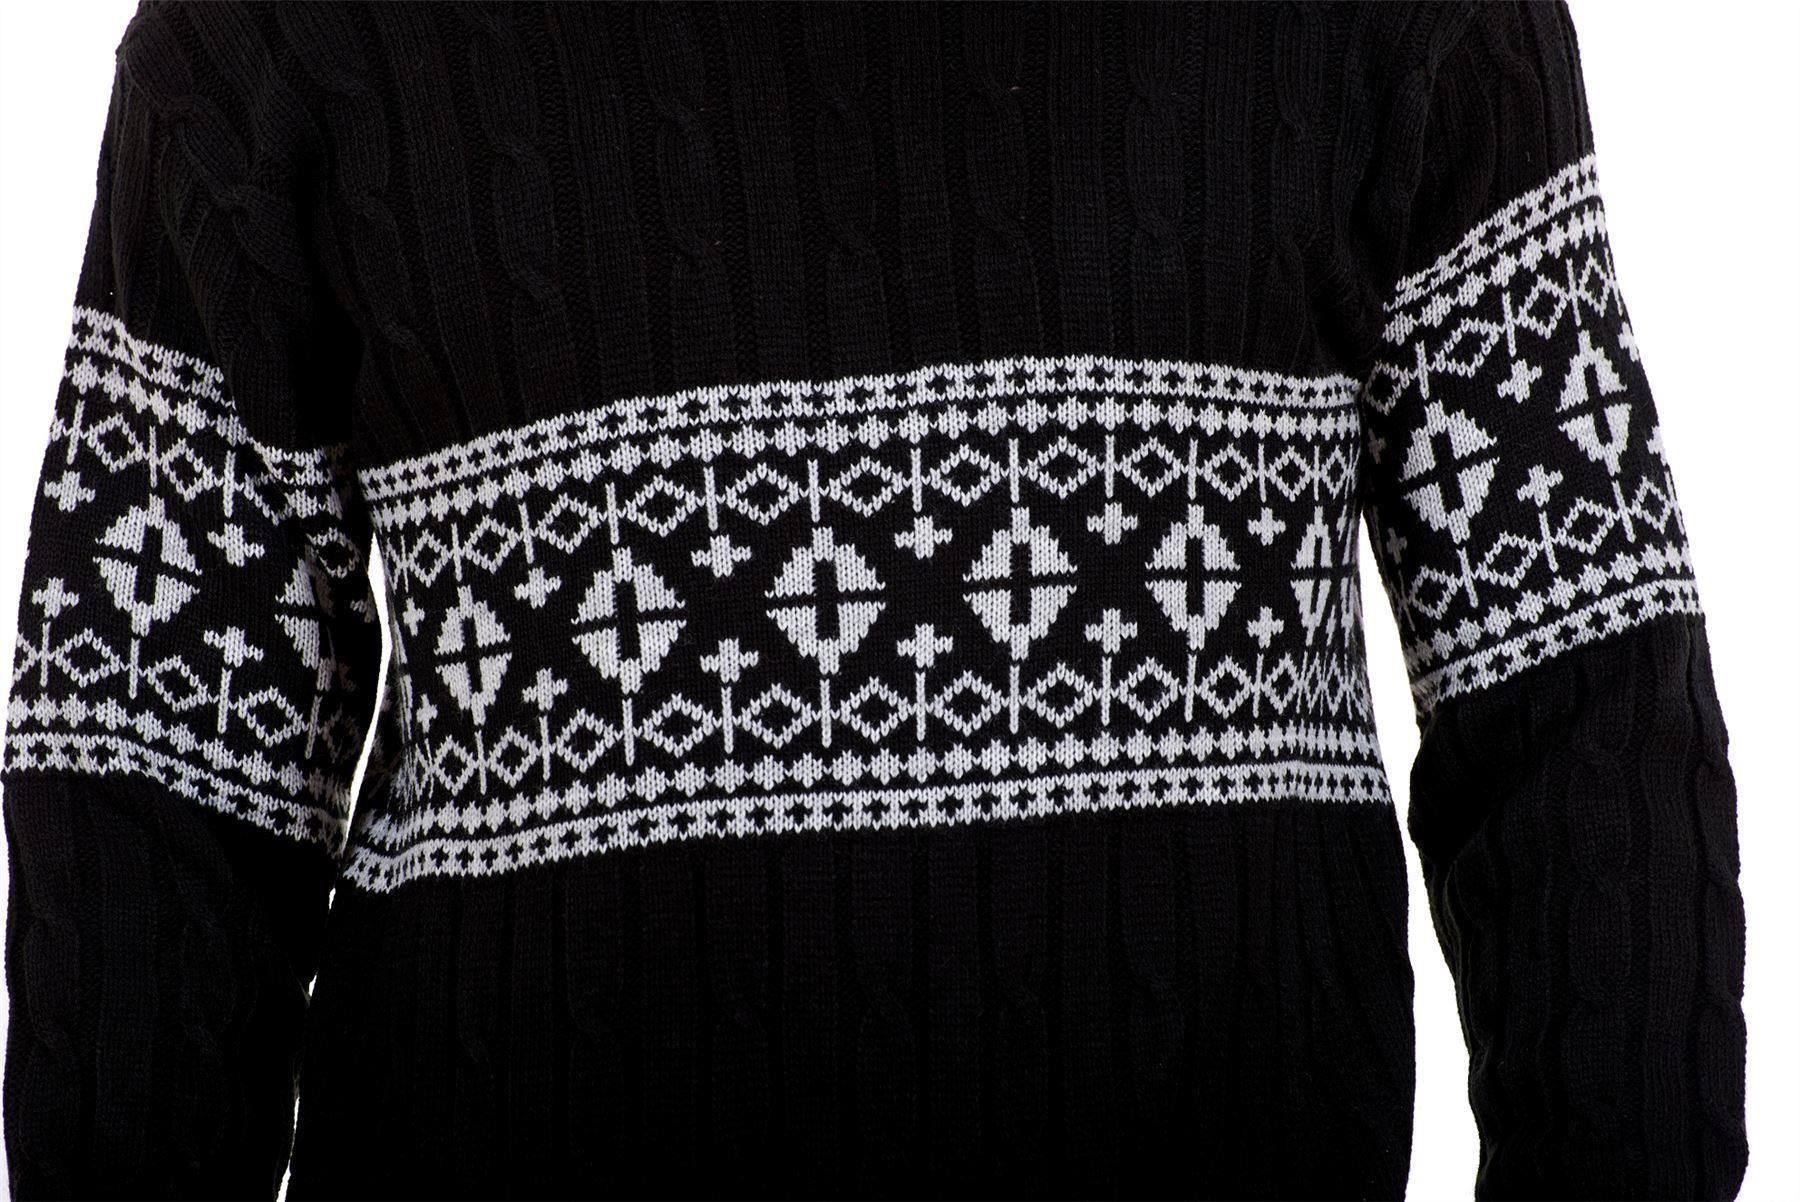 Mens-New-Cable-Knit-Jacquard-Long-Sleeve-Pullover-Jumper-Sweater-S-to-XL thumbnail 5